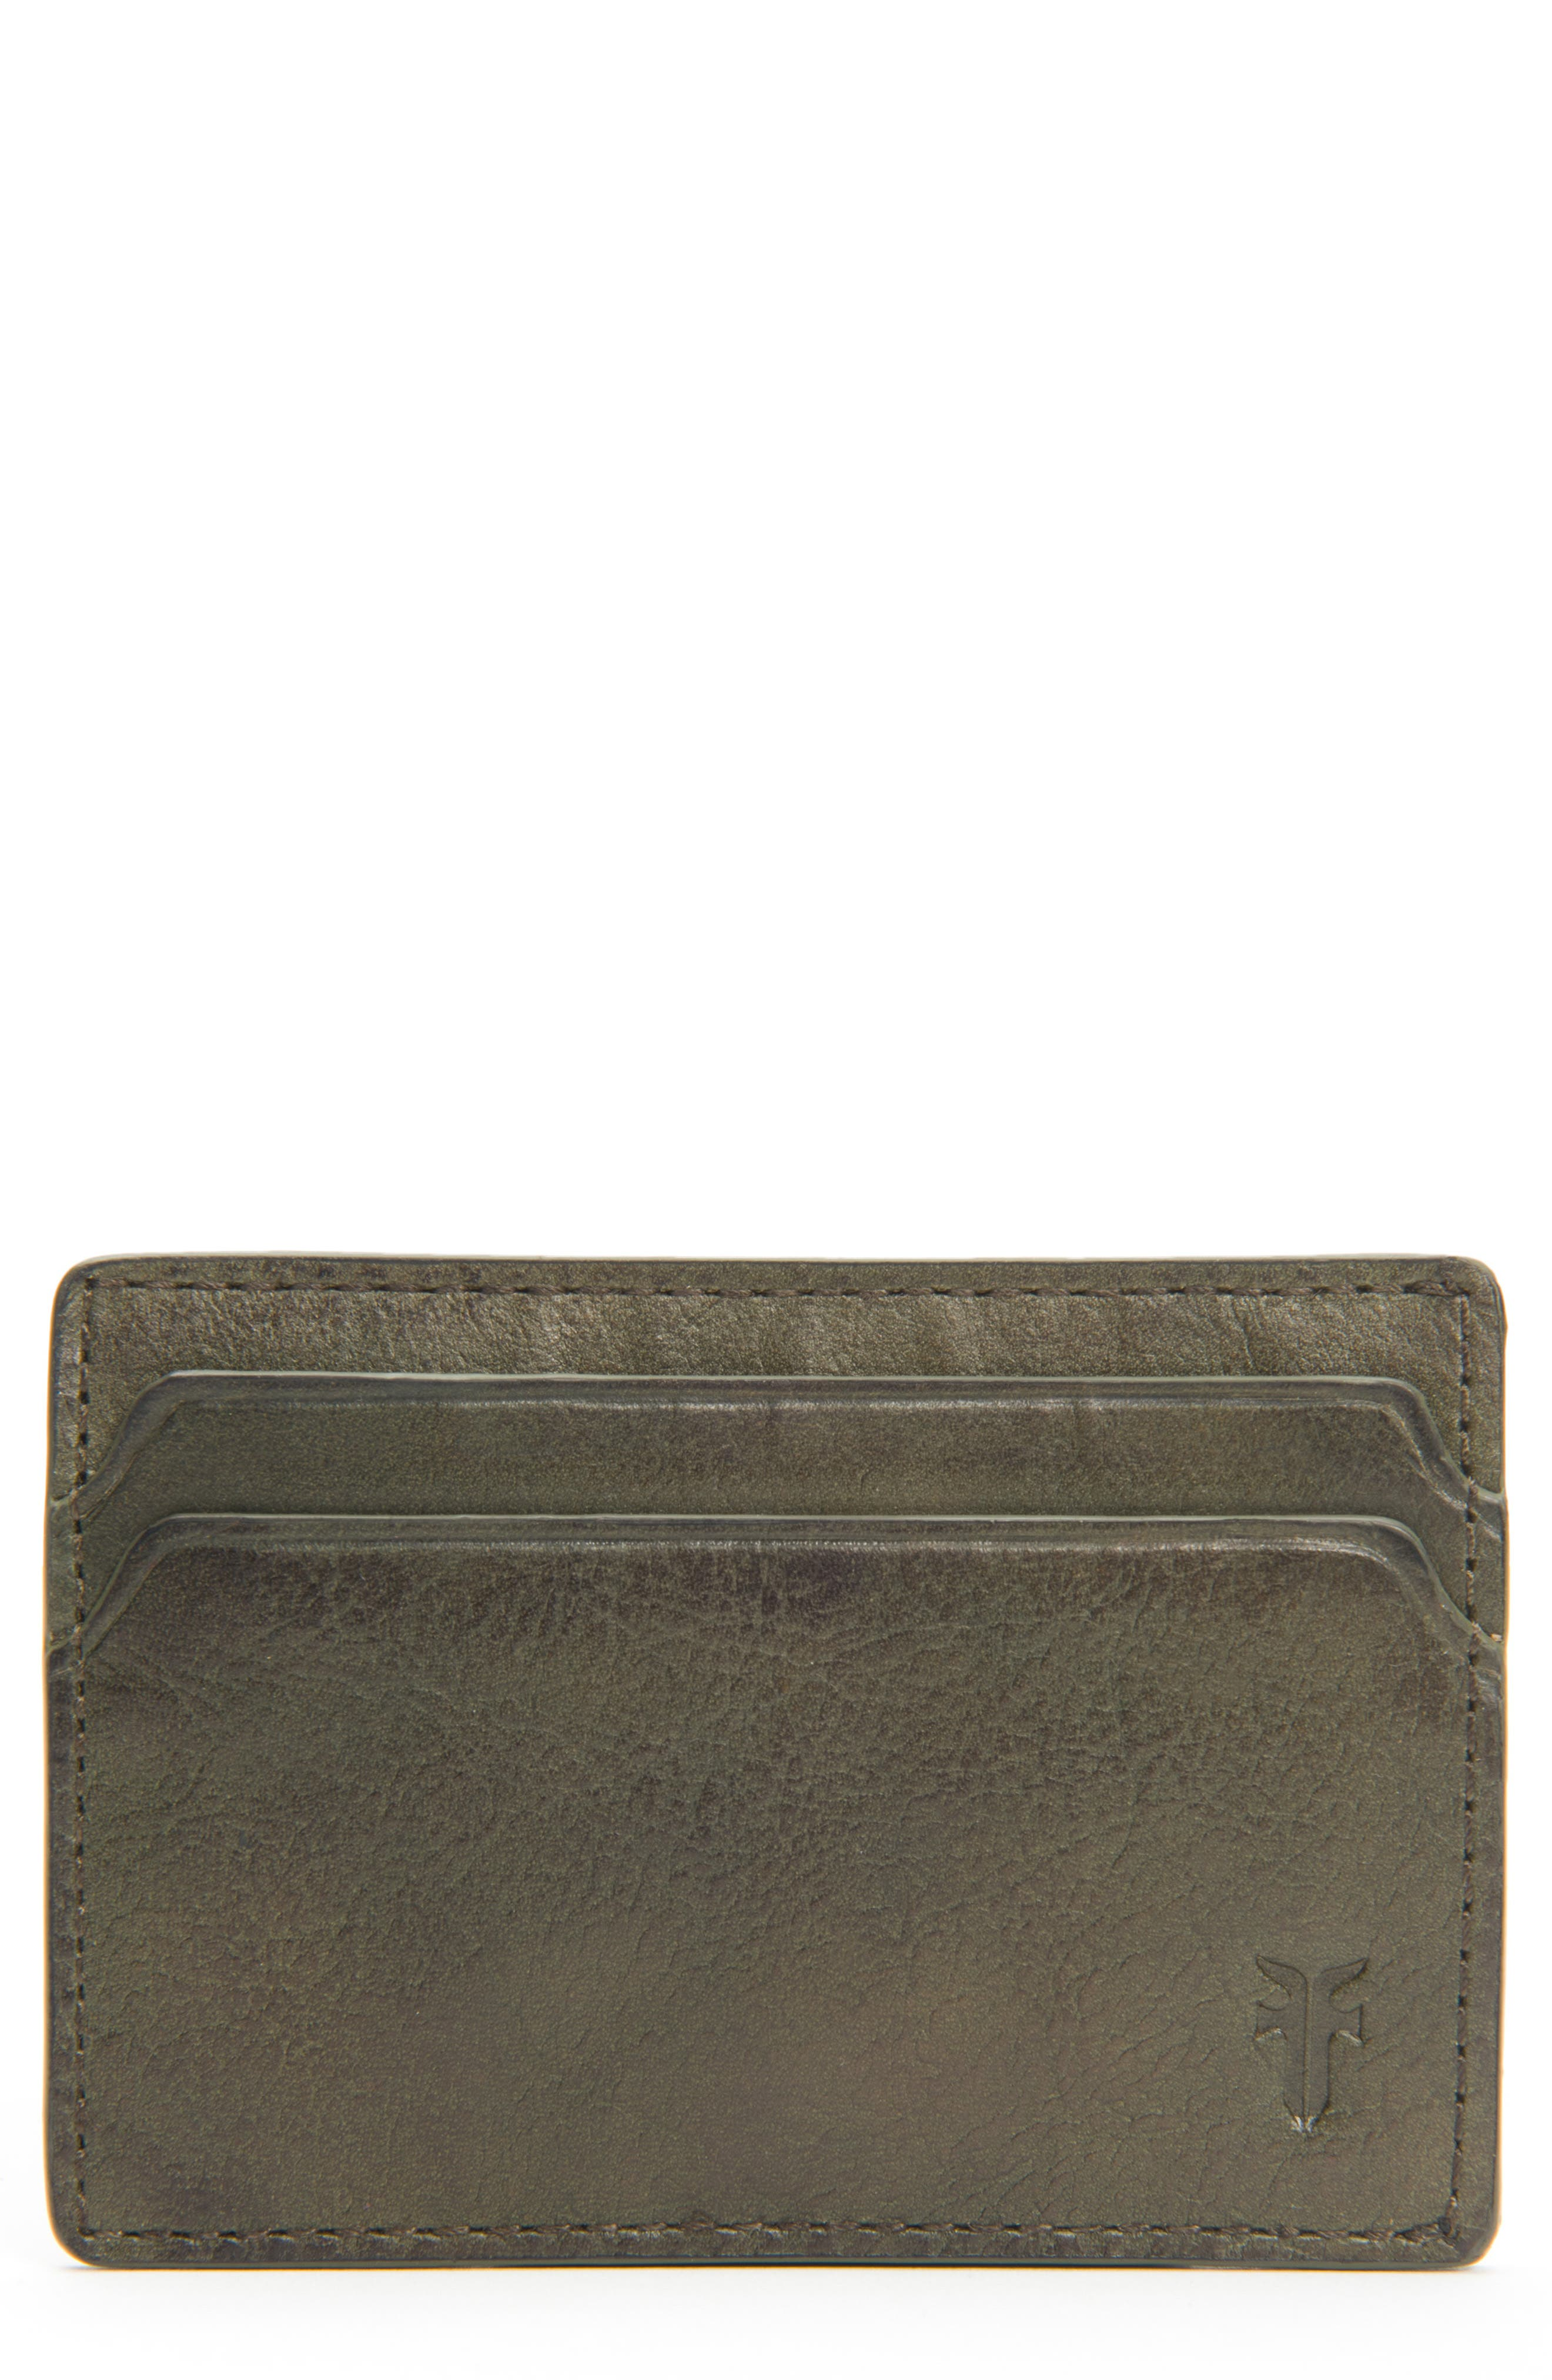 Oliver Leather Card Case,                             Main thumbnail 1, color,                             OLIVE